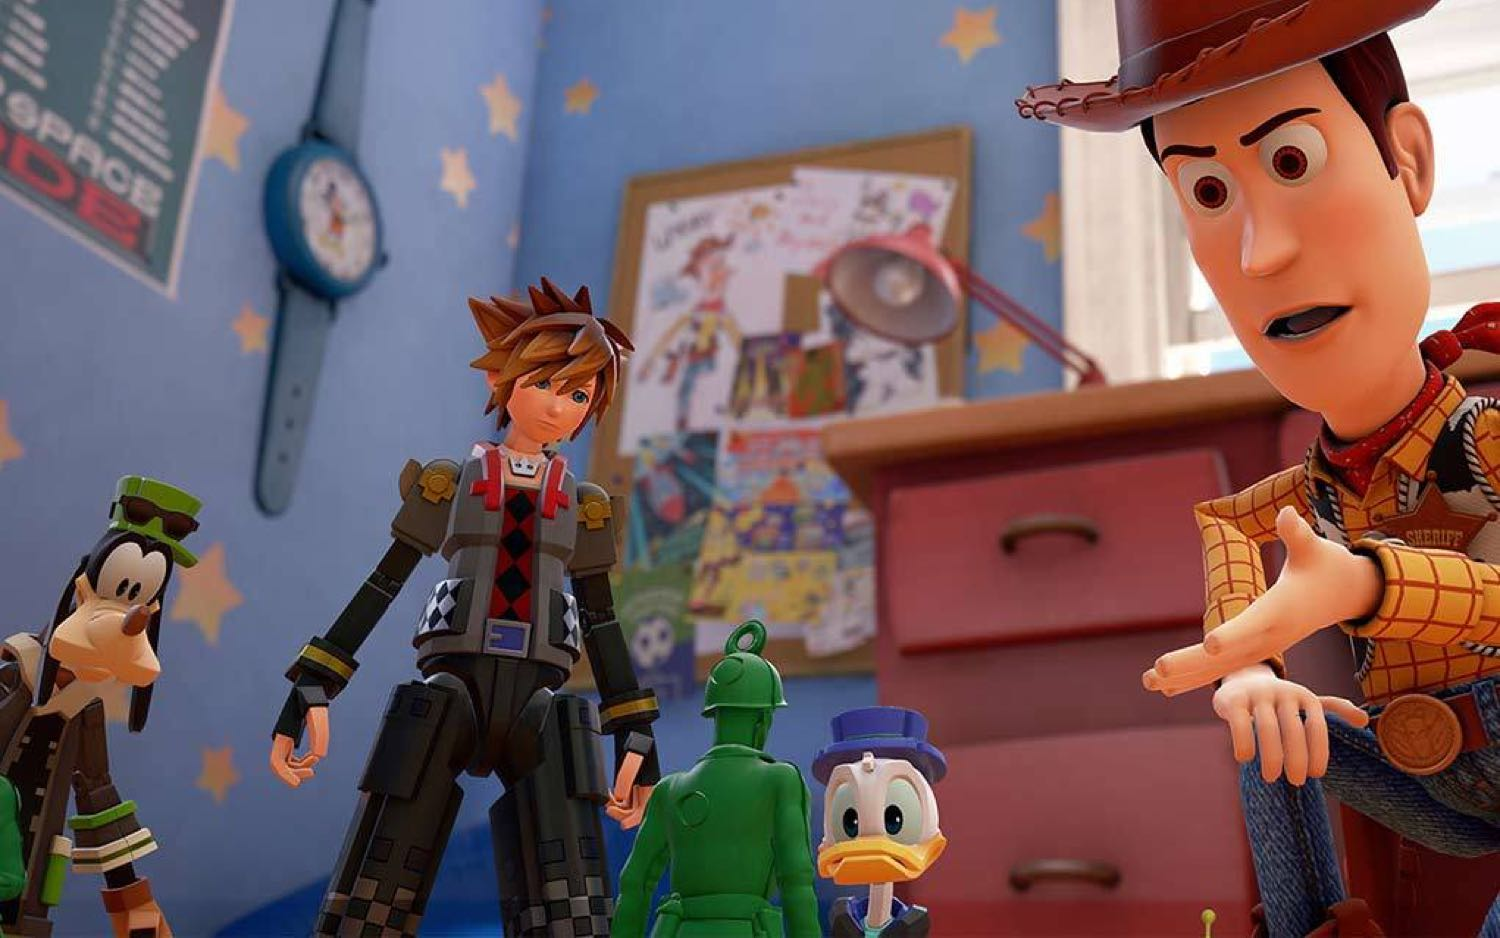 What Is Kingdom Hearts? Gaming's Most Convoluted Crossover